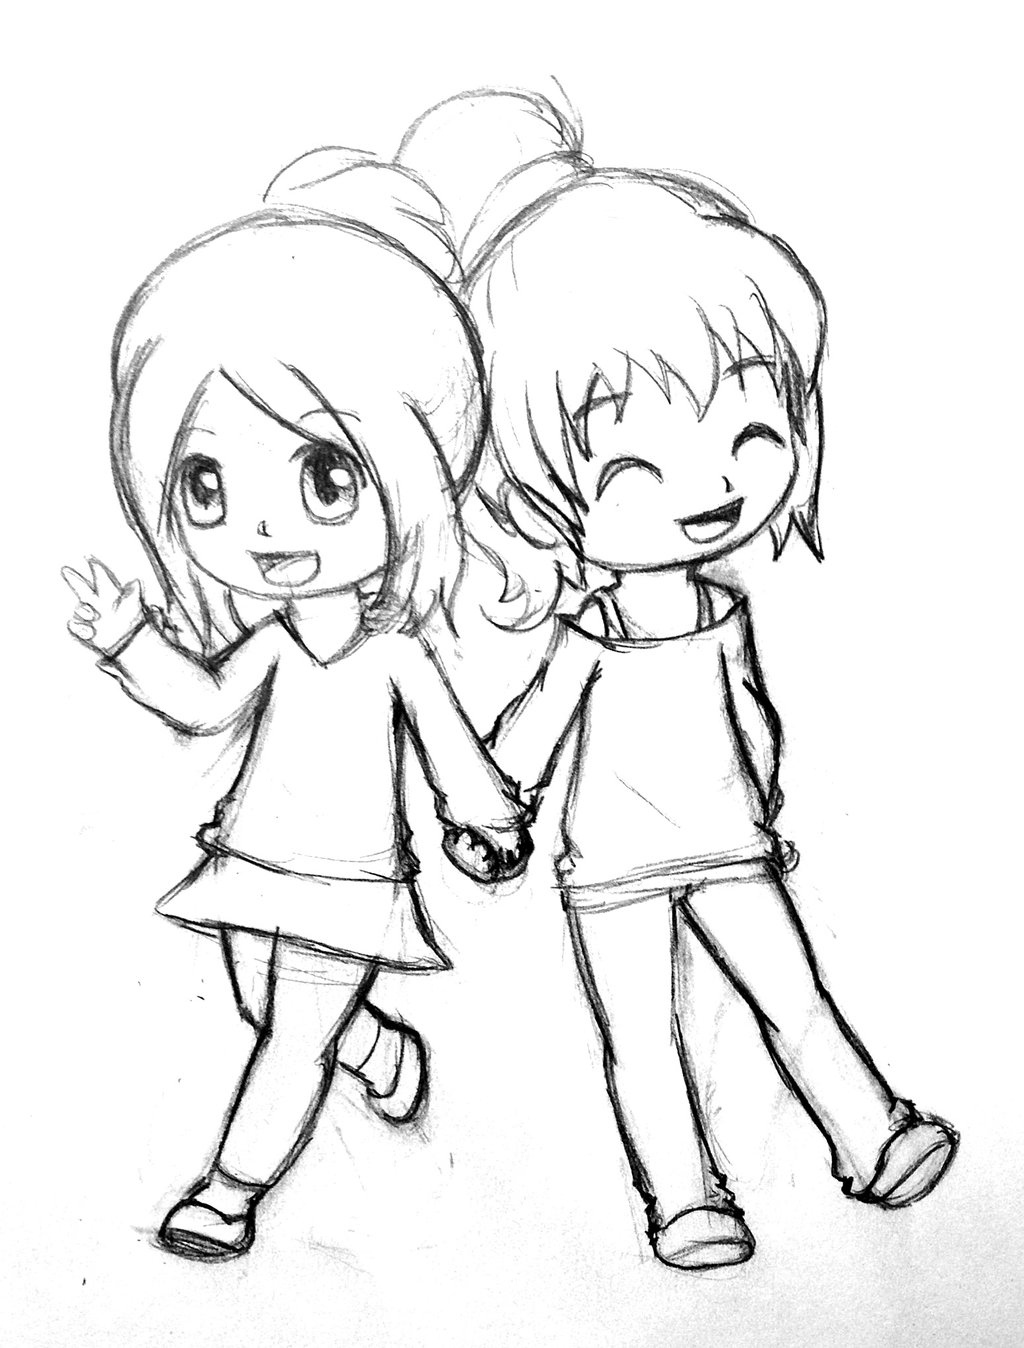 1024x1348 World Best Sketch Of Girls And Boys Drawing Of Best Friends Girl